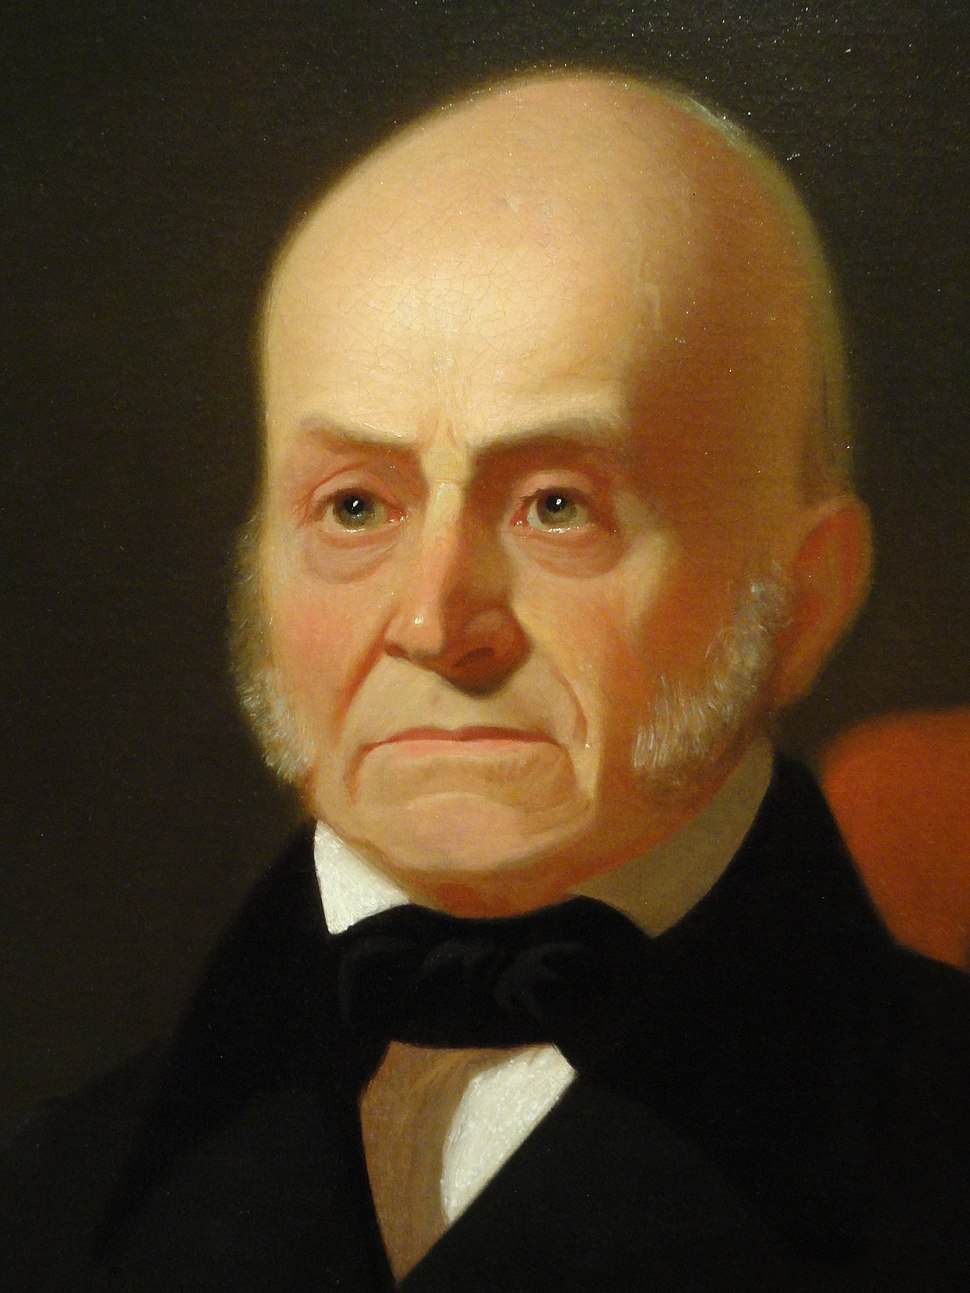 John Quincy Adams by George Caleb Bingham (detail), c. 1850 after 1844 original - DSC03235